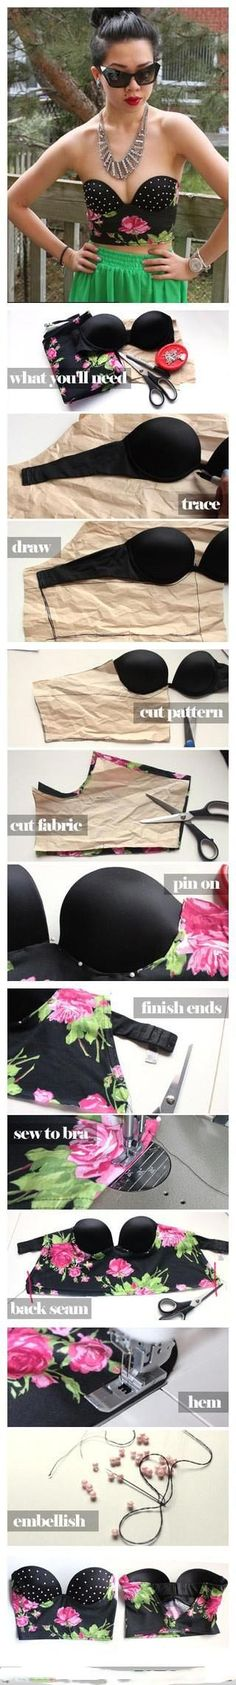 DIY Fashion Idea With Bra - diy clothes Recycling Ideen Diy Bralette, Bralette Tops, Diy Clothing, Sewing Clothes, Sewing Tutorials, Sewing Hacks, Sewing Ideas, Sewing Crafts, Old Bras